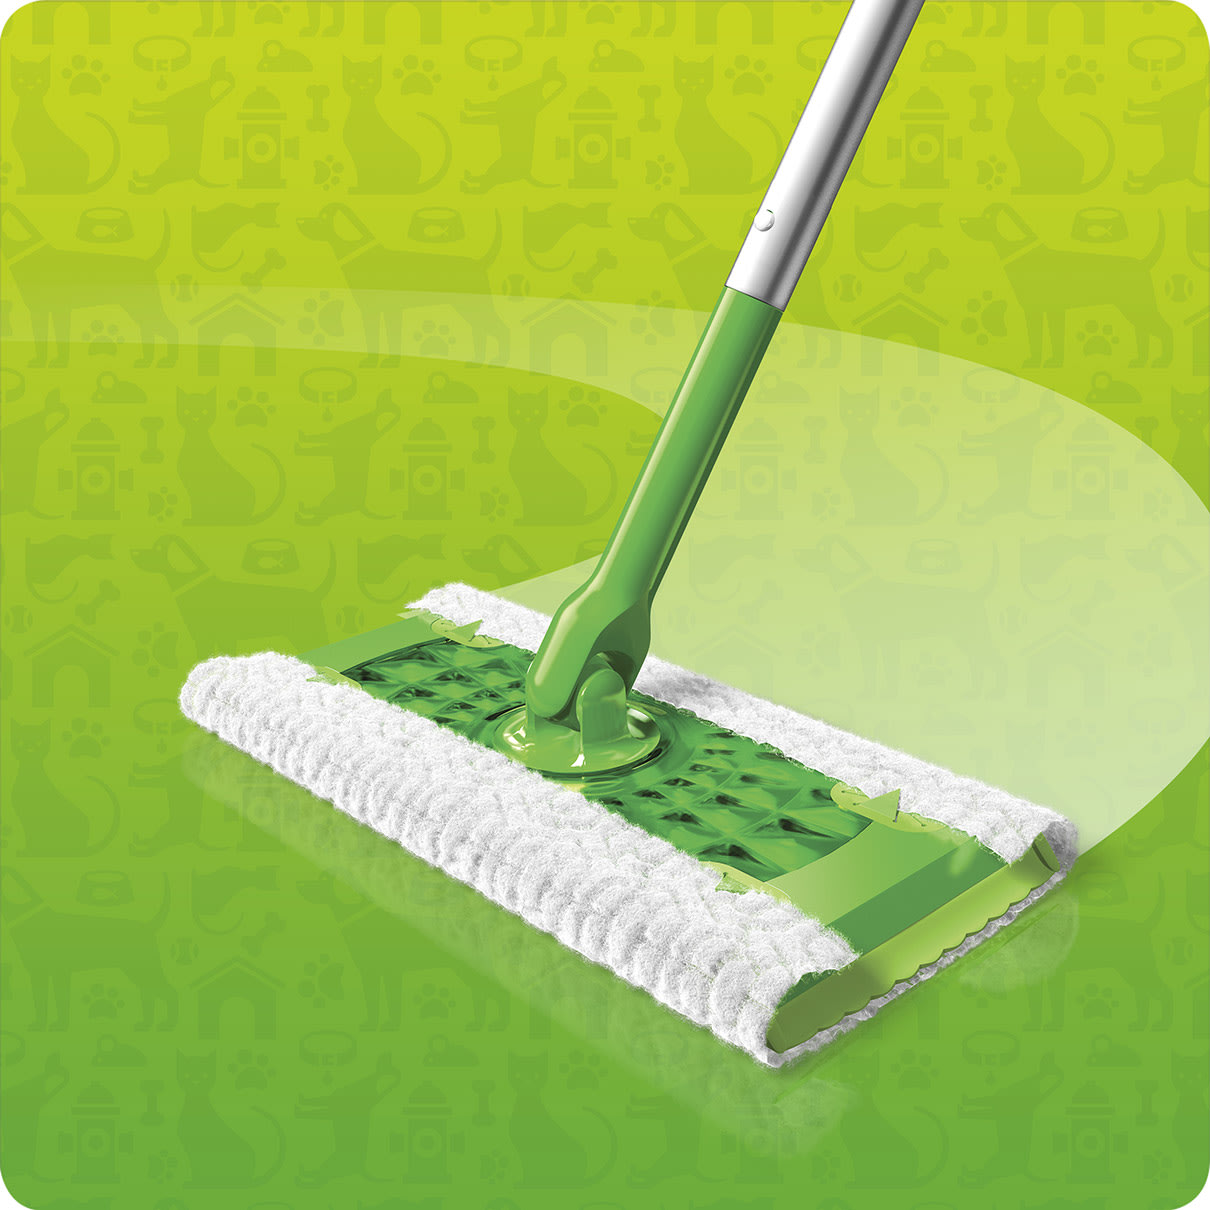 Swiffer Sweeper Dry Pet Refill in Action